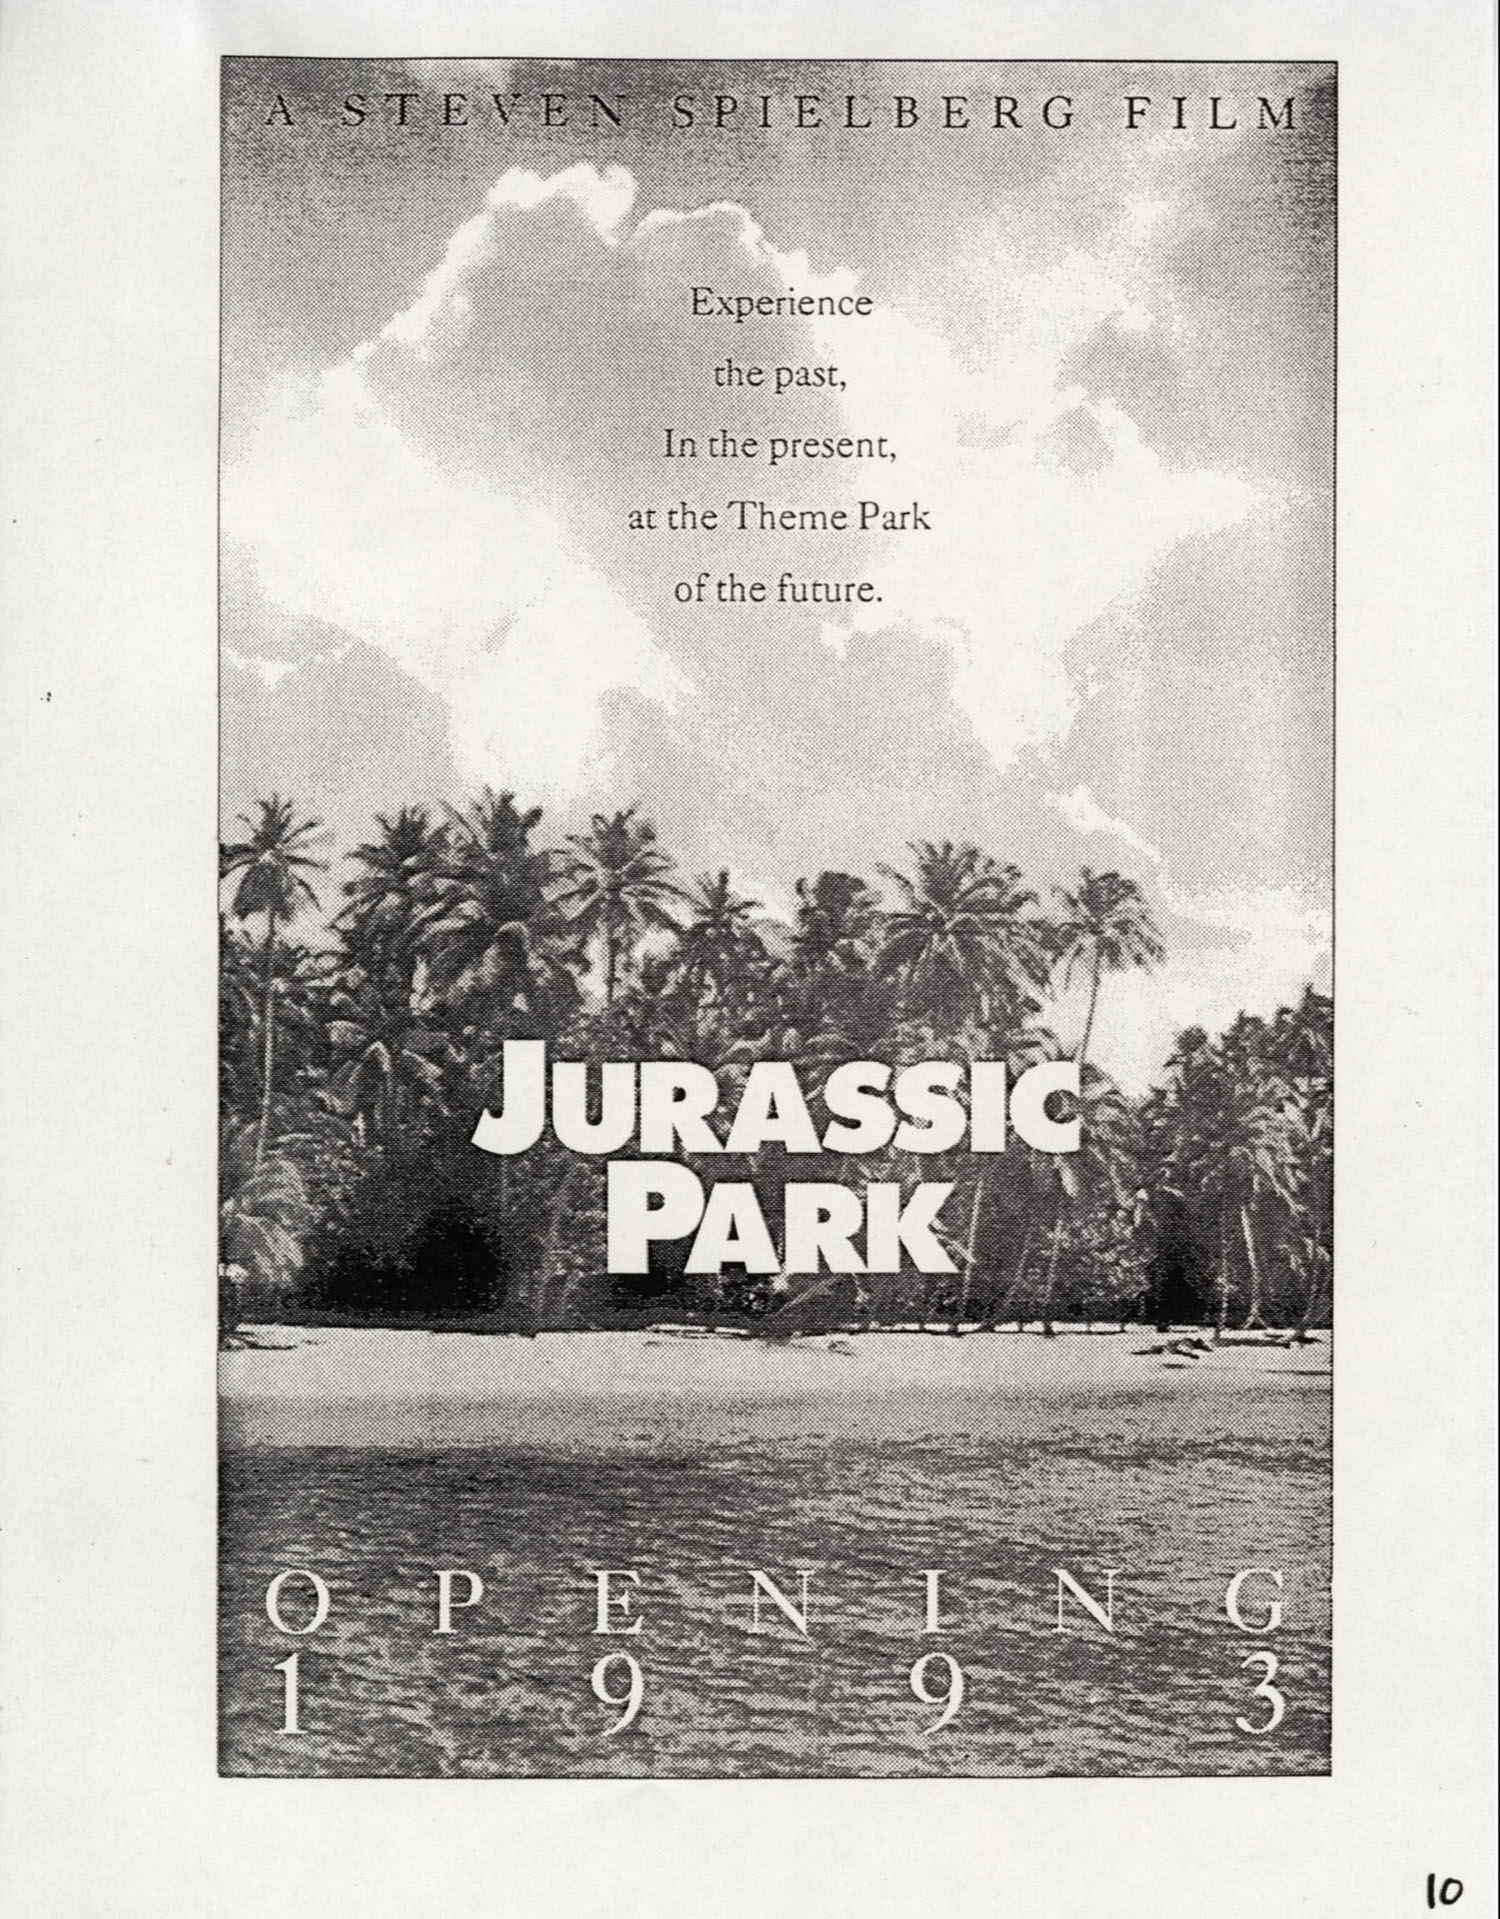 John Alvin   Jurassic Park poster   12 Exclusive: Over a Dozen Never Before Seen Jurassic Park Posters From Famous Artist John Alvin